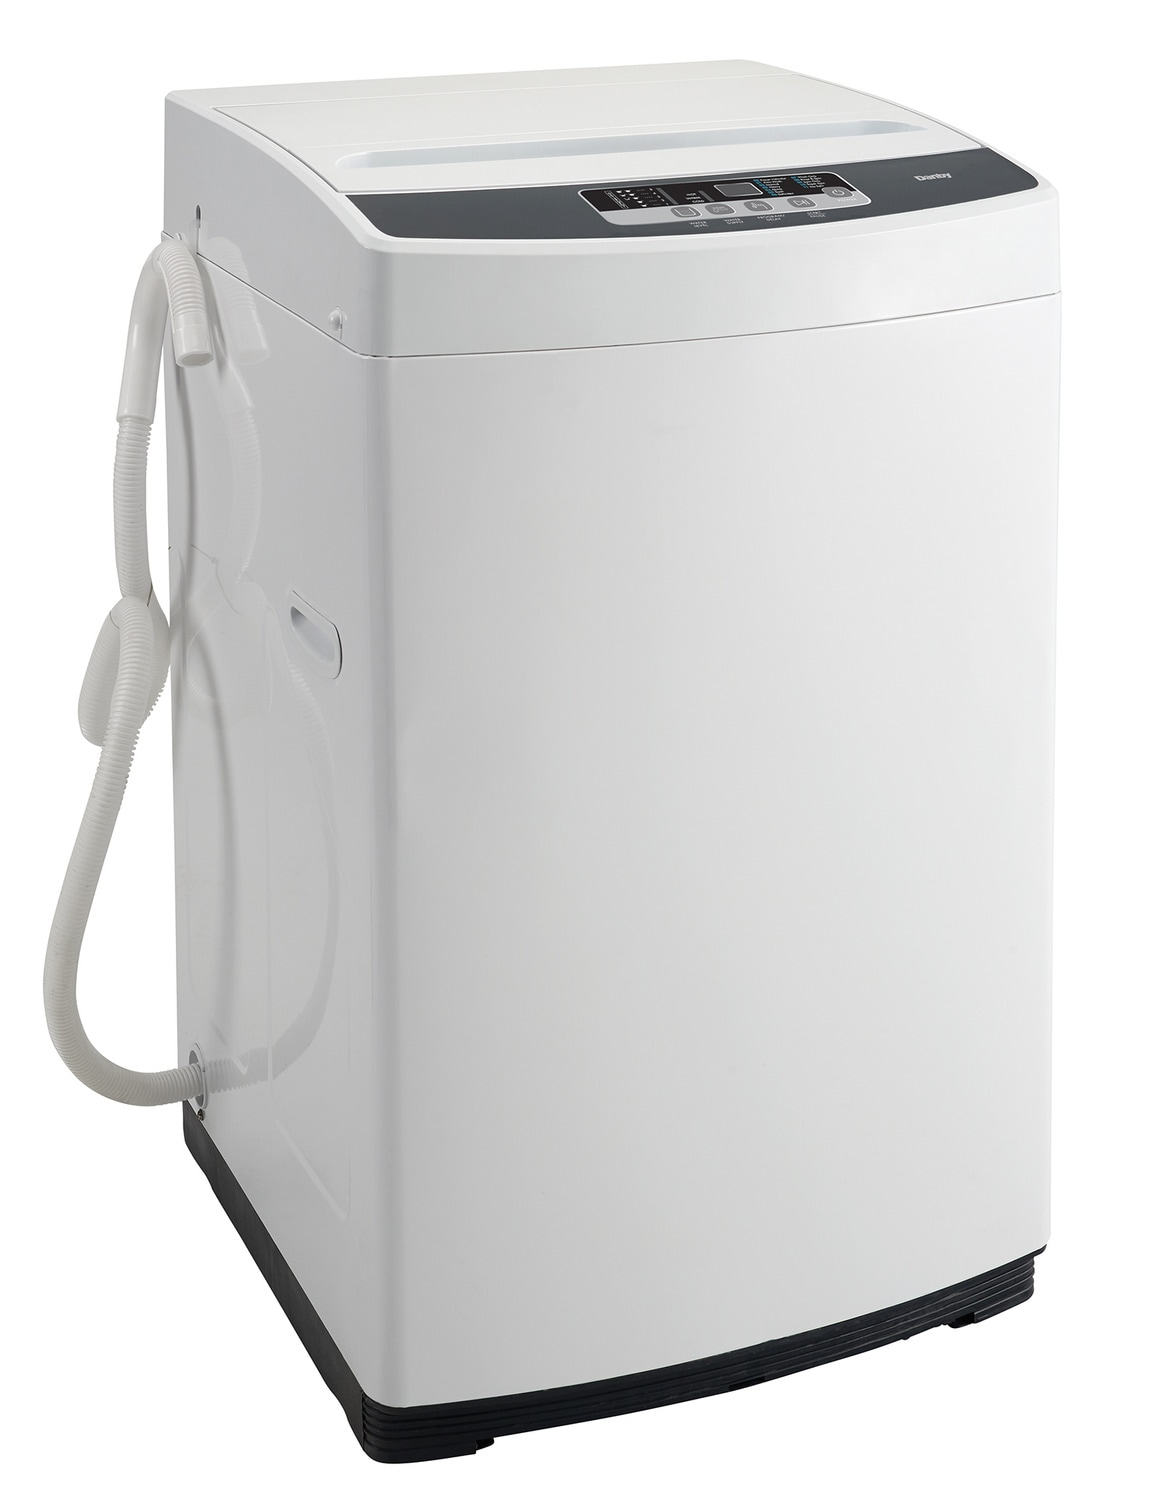 Washers and Dryers - Danby White Portable Washing Machine (1.29 Cu. Ft.) - DWM045WDB